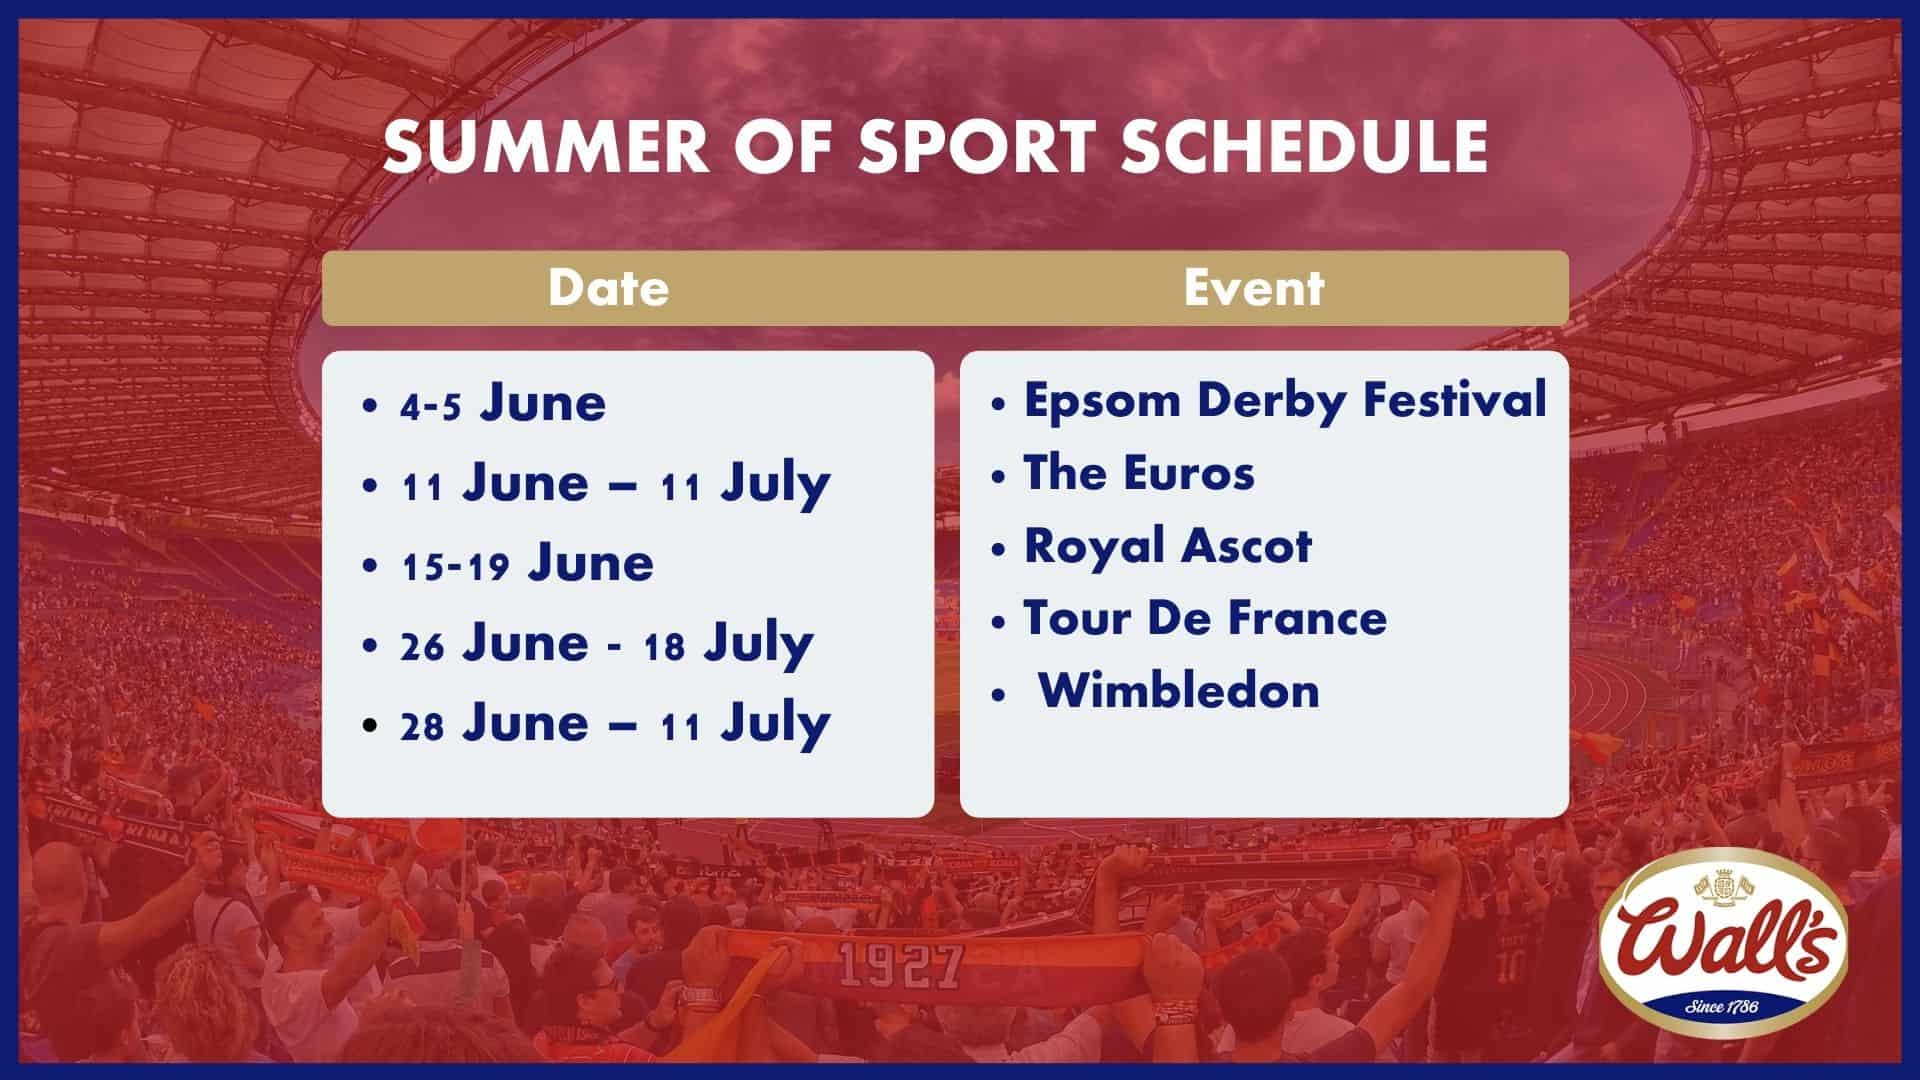 Wall's Pastry summer of sport schedule